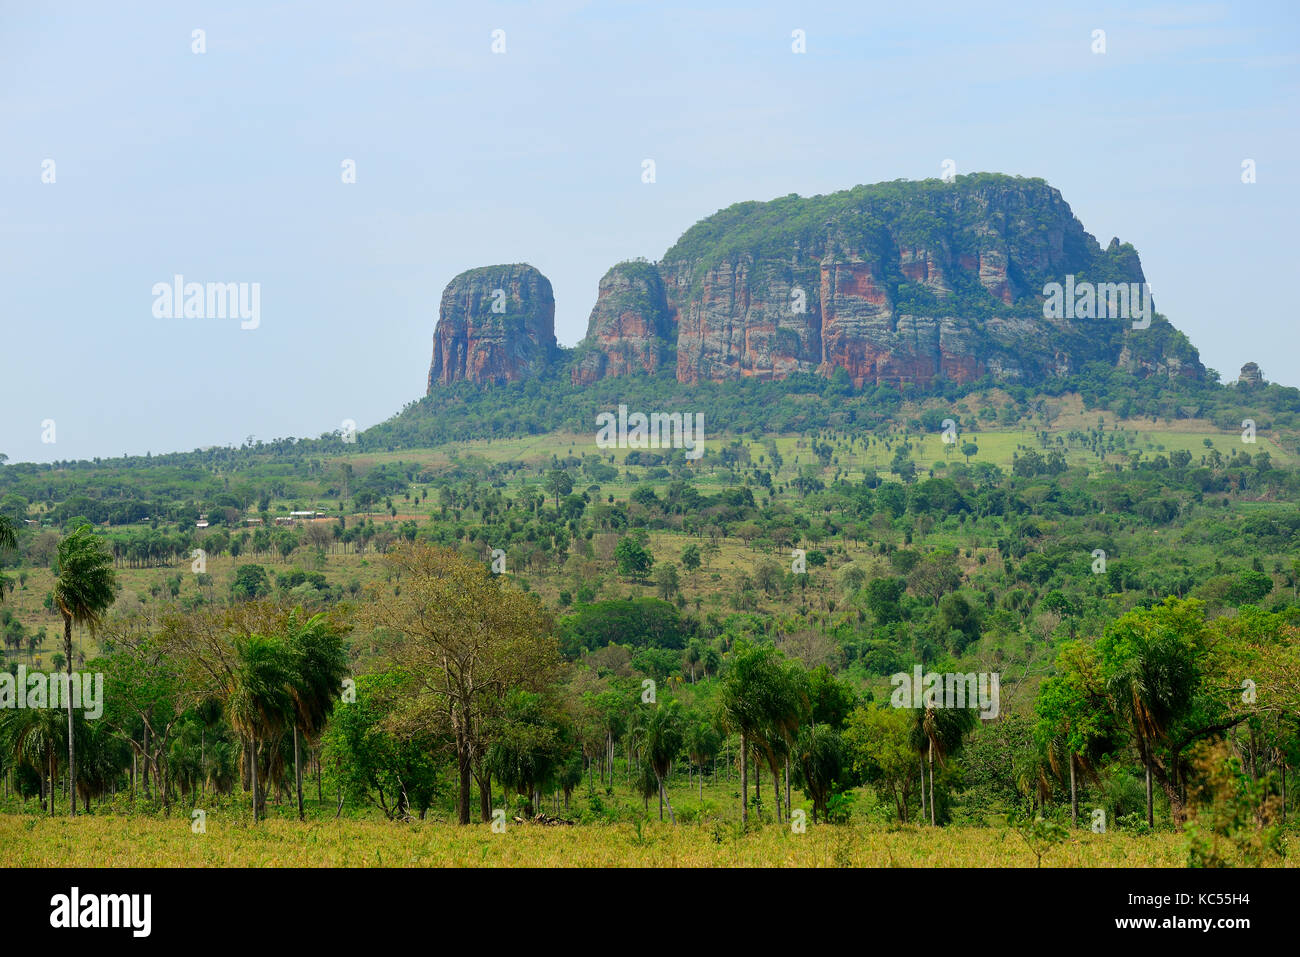 Typical landscape with rock formation Cerro Memby in the background, Yby Yau, Concepcion, Paraguay - Stock Image